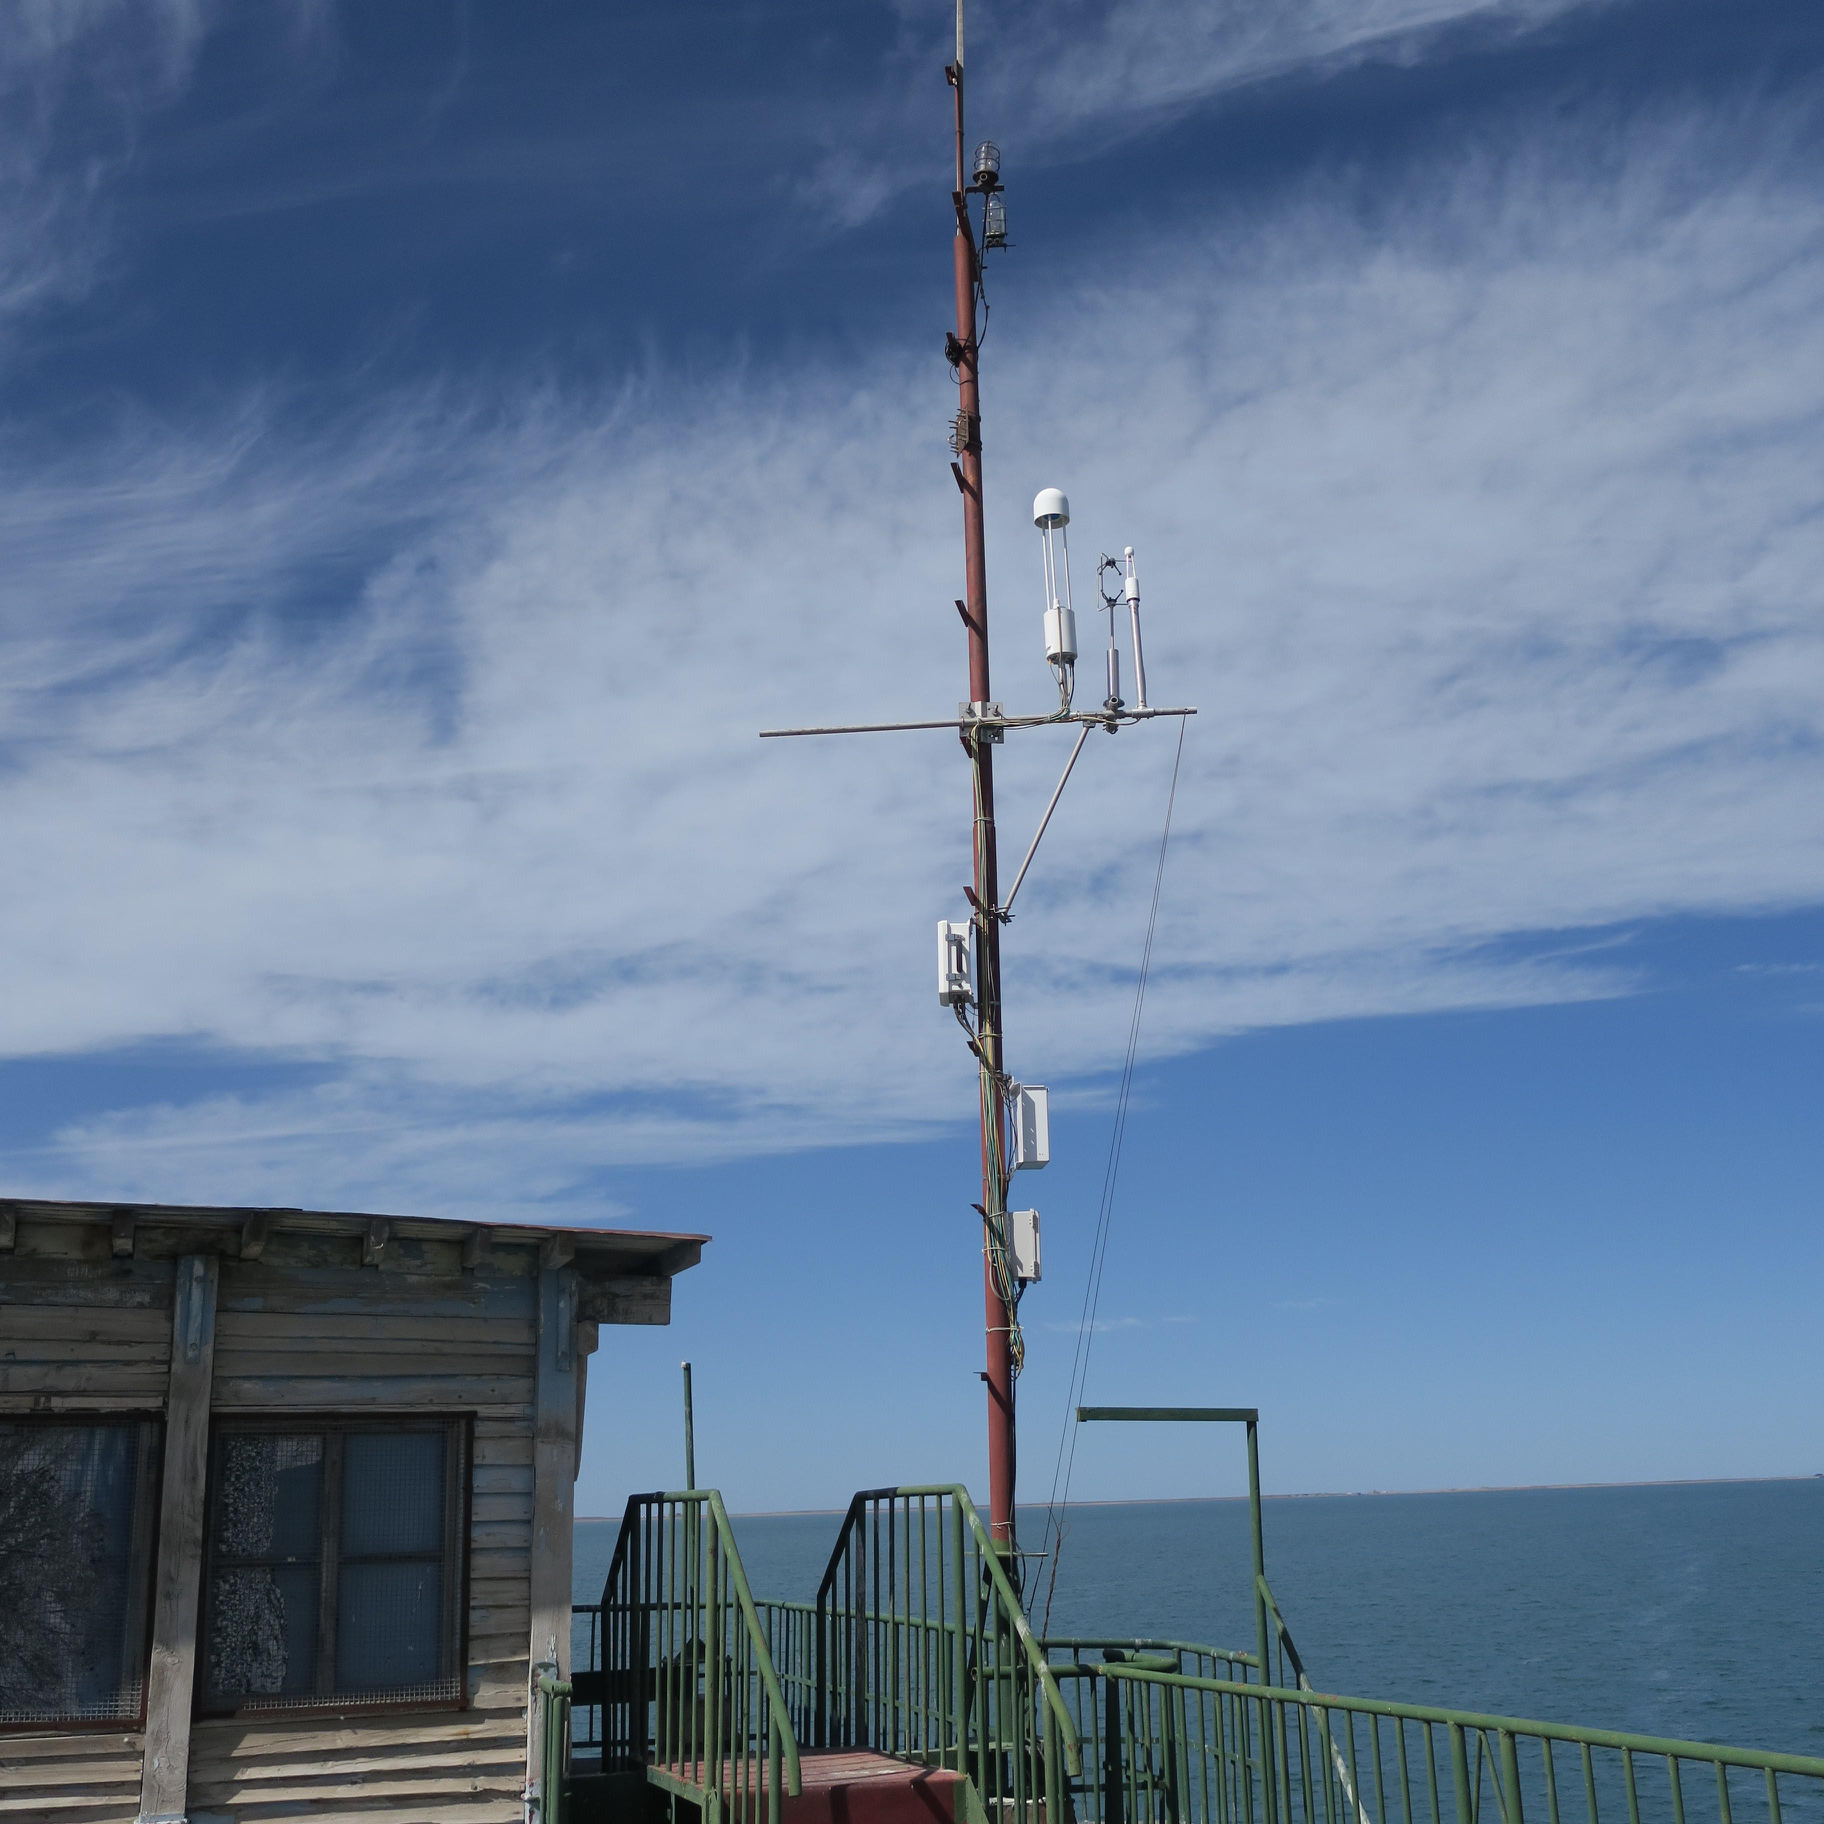 Qilian Mountains integrated observatory network: Dataset of Qinghai Lake integrated observatory network (eddy covariance system of Yulei station on Qinghai lake, 2018)